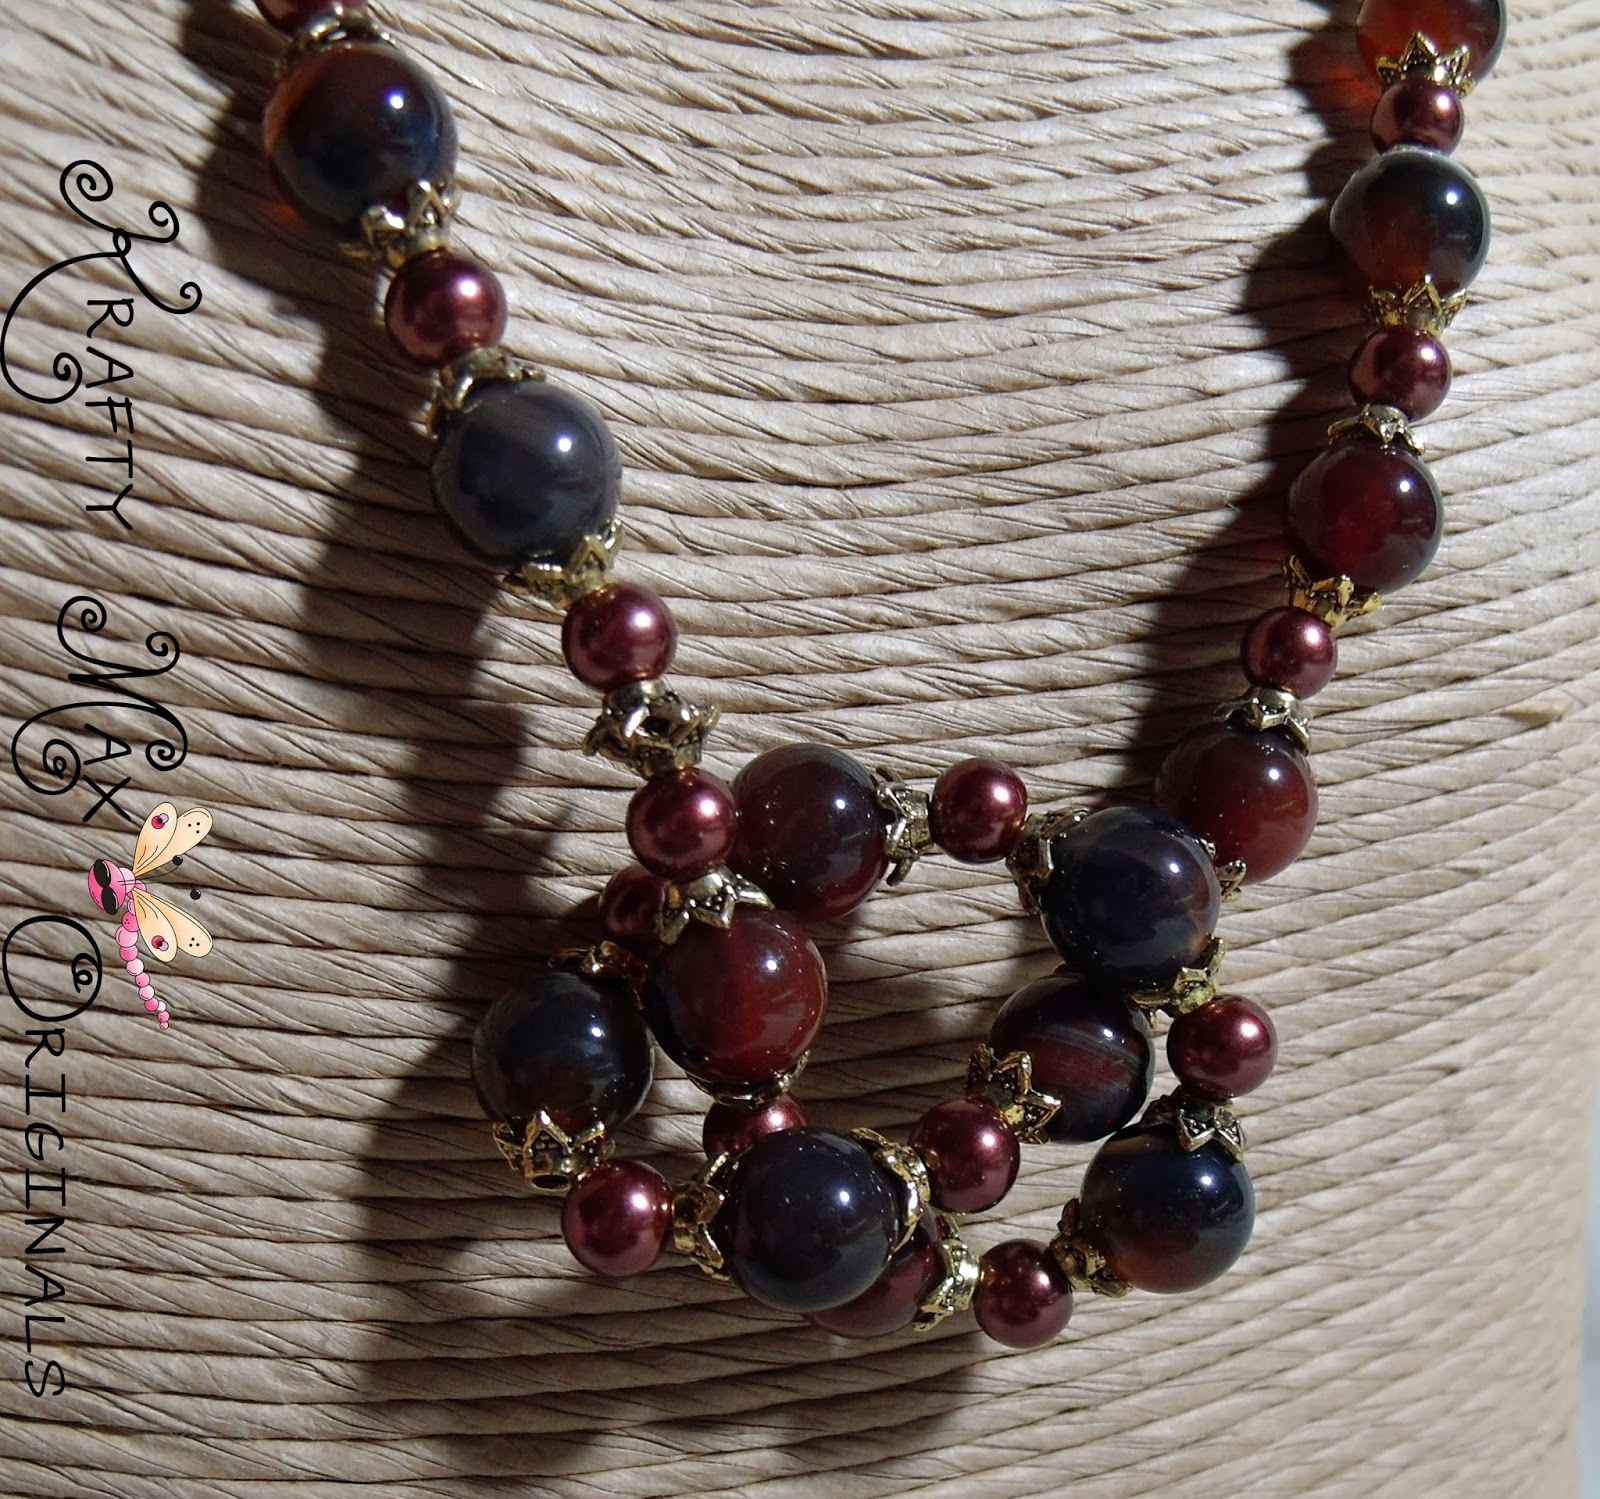 http://www.lajuliet.com/index.php/2013-01-04-15-21-51/ad/gemstone,92/exclusive-deep-mahogany-gemstone-and-burgundy-glass-pearls-with-gold-plated-findings-a-krafty-max-original-design,297